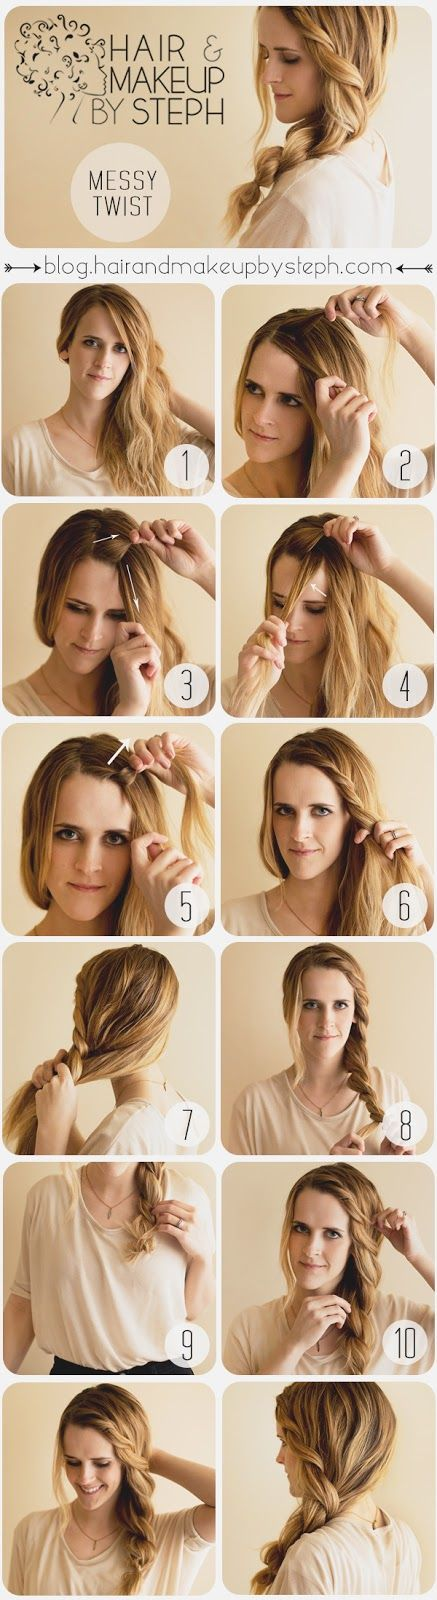 Music Festival Series 1 Messy Twist Tips For